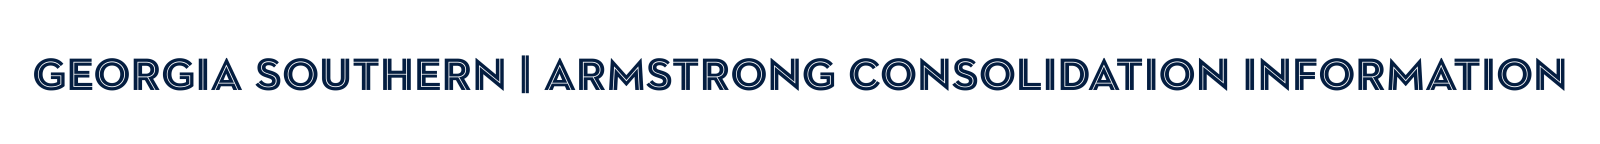 Georgia Southern Armstrong Consolidation Information